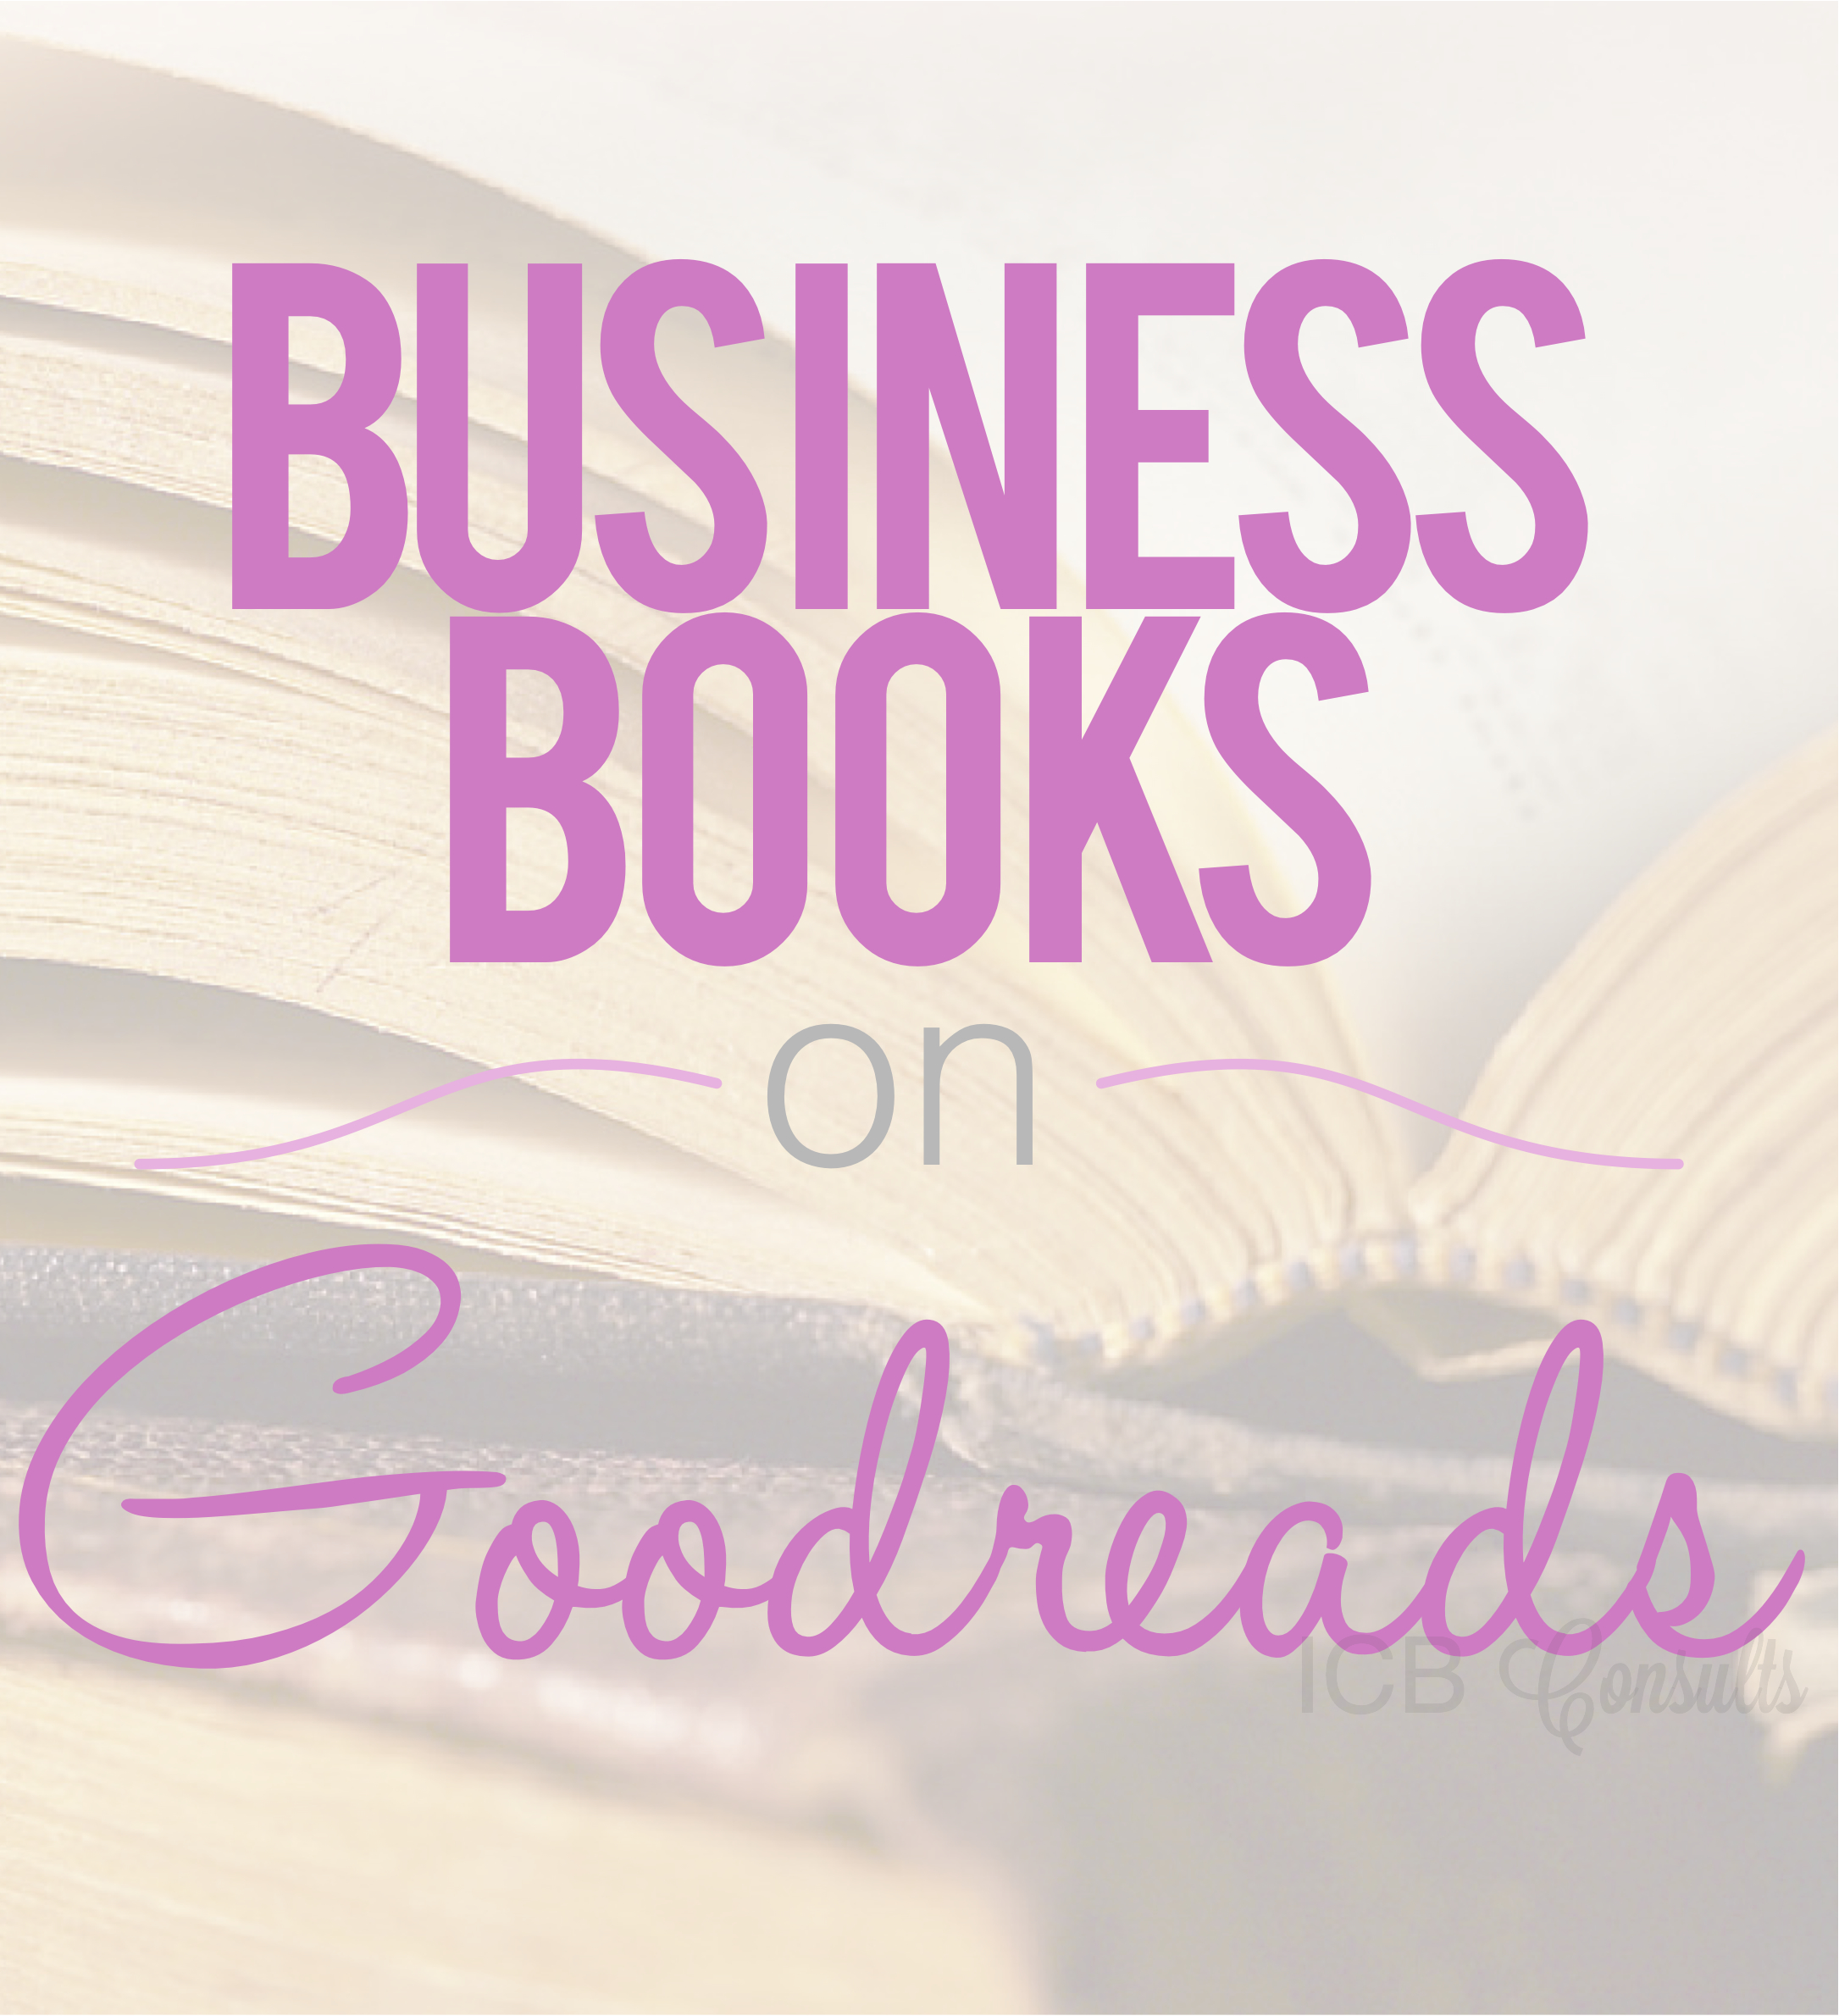 Business Books On Goodreads Imperfect Concepts